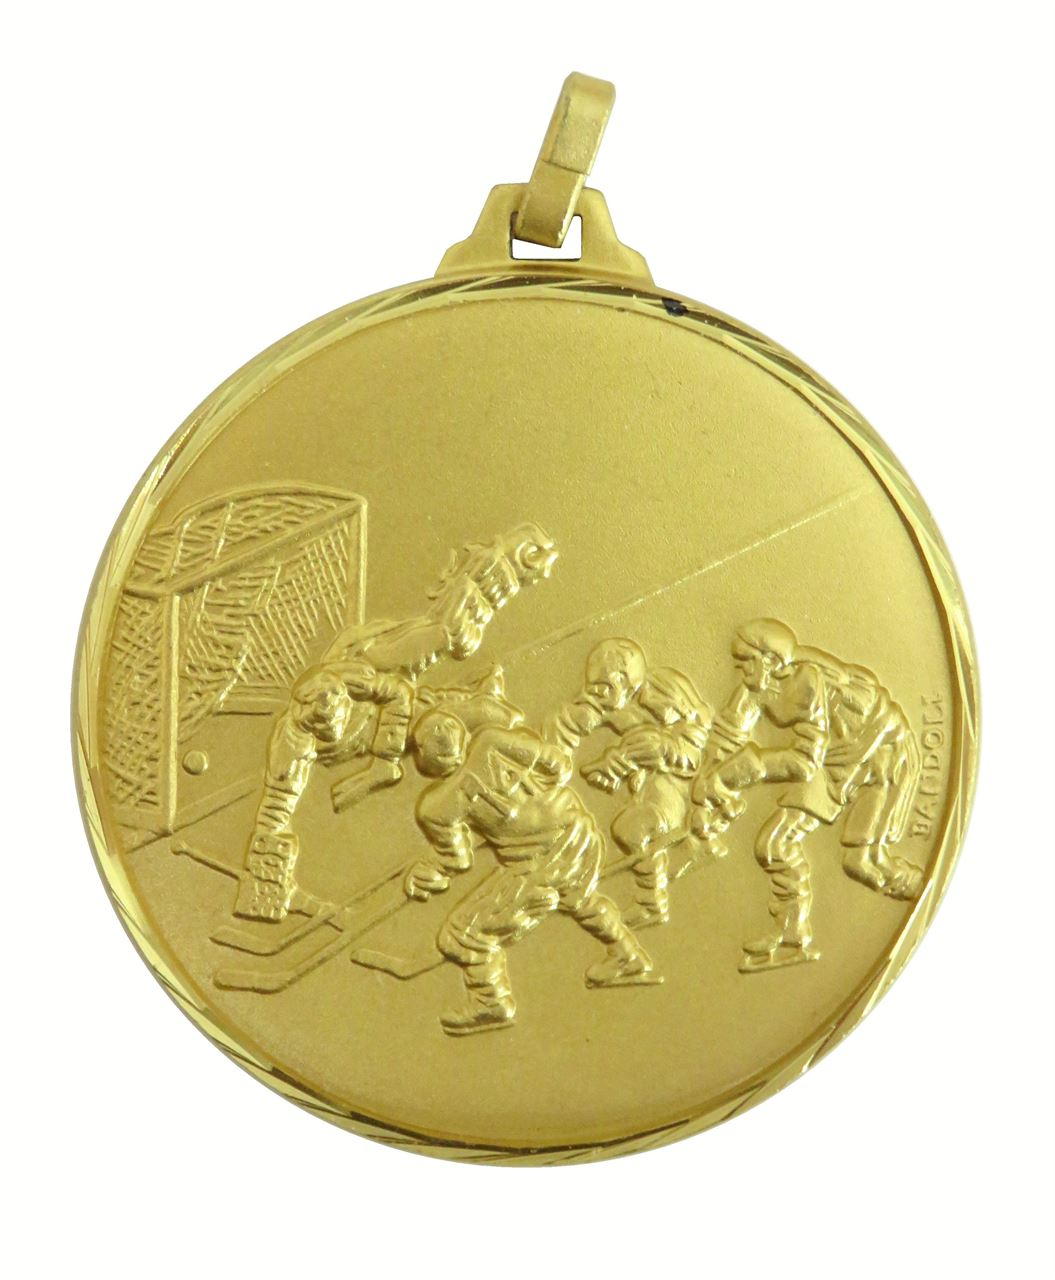 Gold Faceted Ice Hockey Medal (size: 52mm) - 225/52G